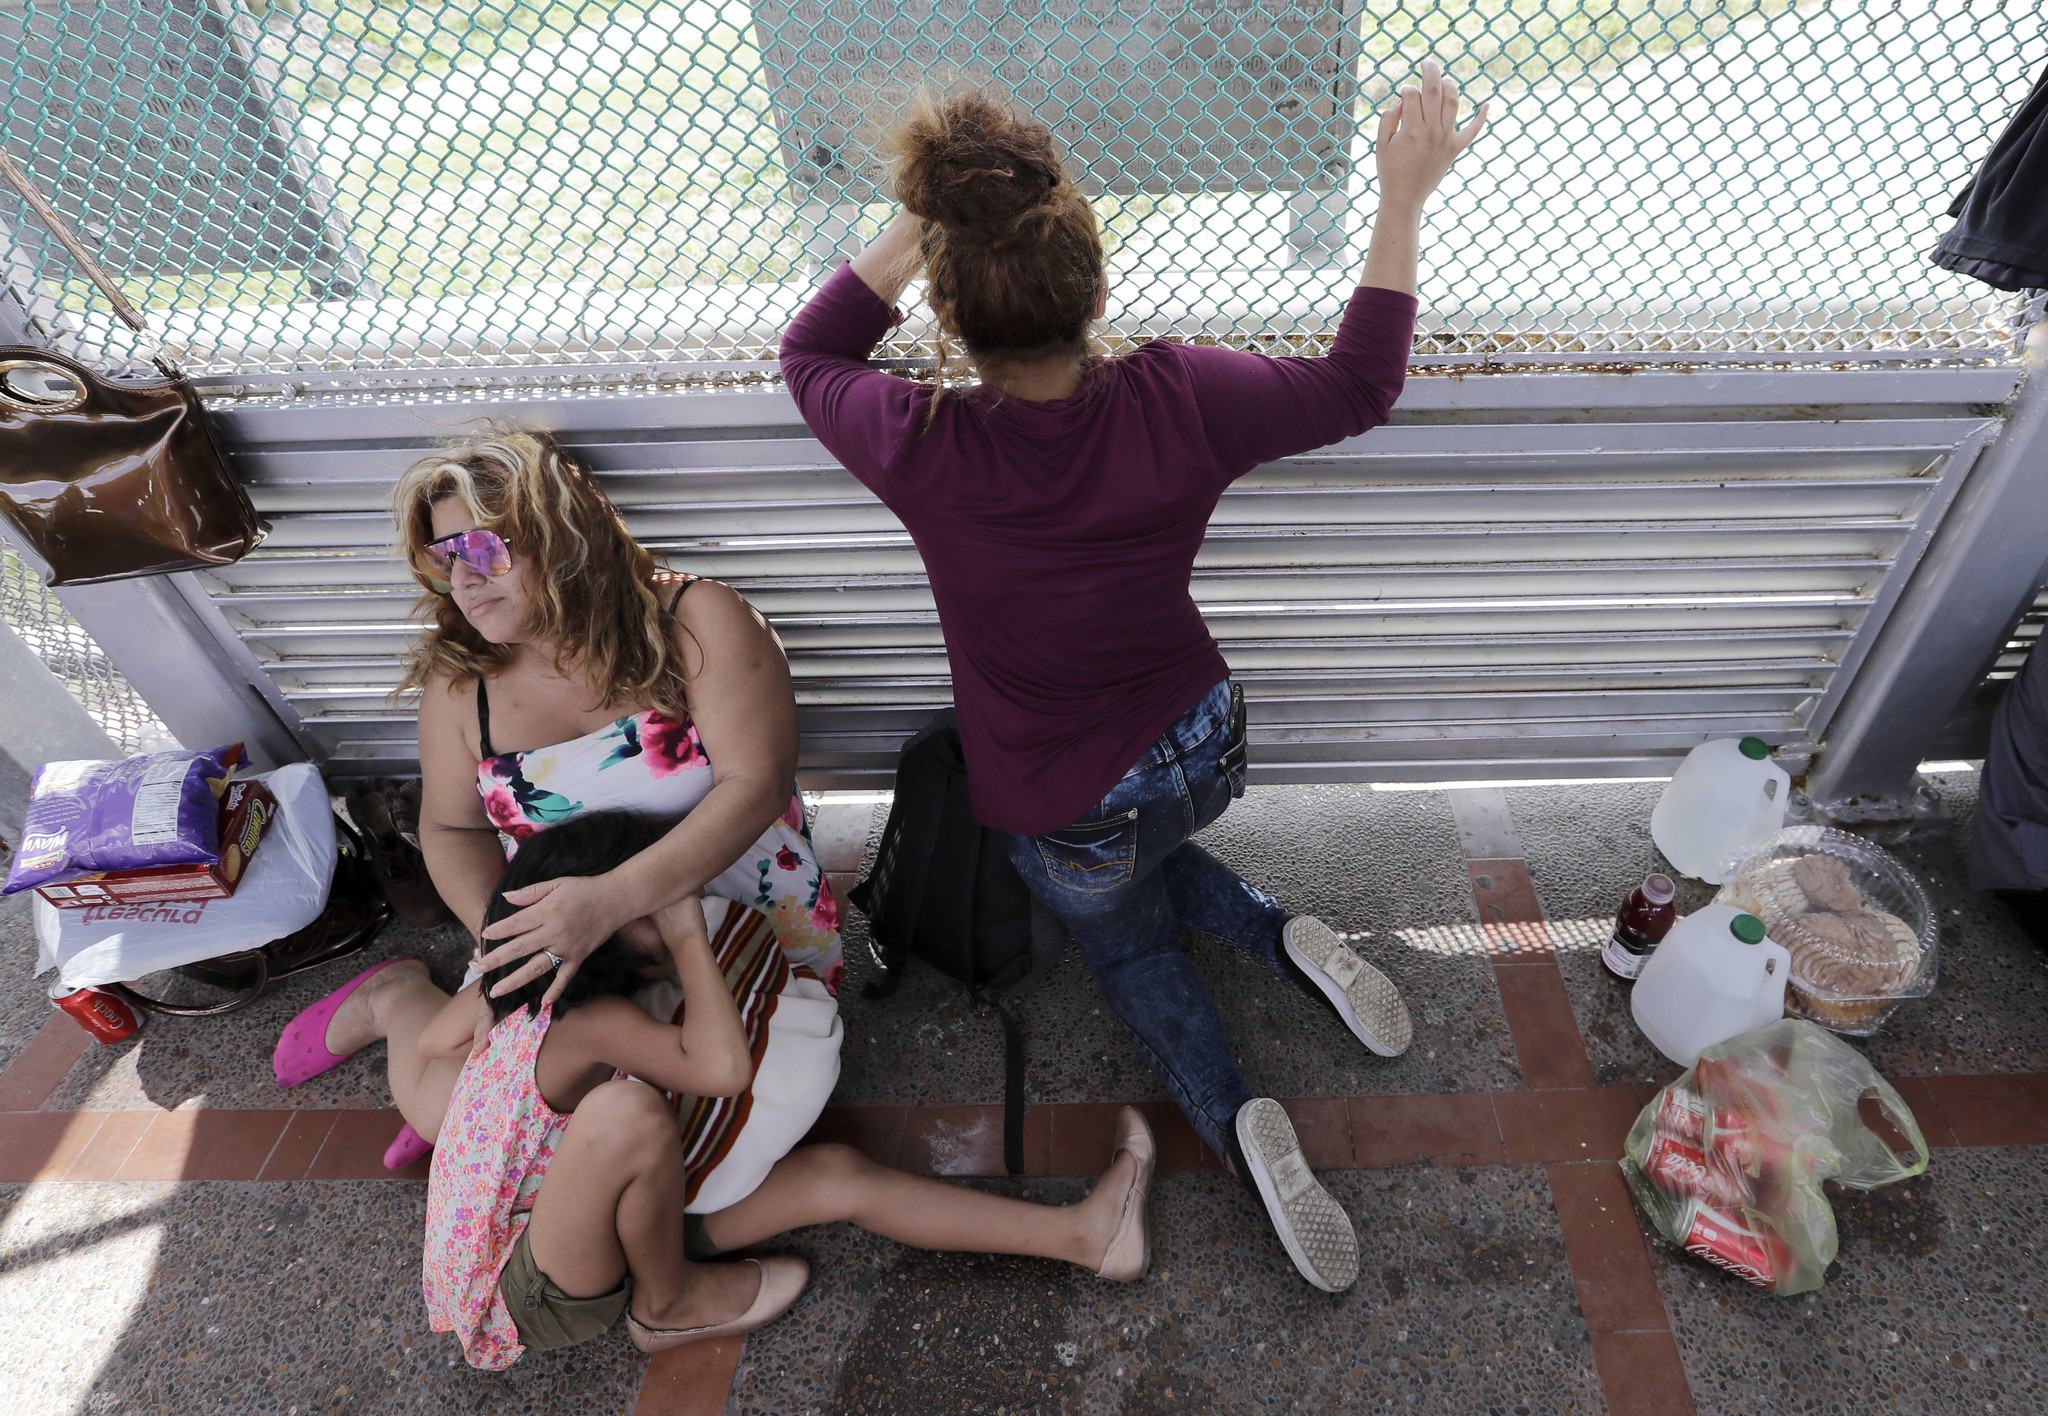 In Texas at a hub for border crossings families spread throughout U.S.